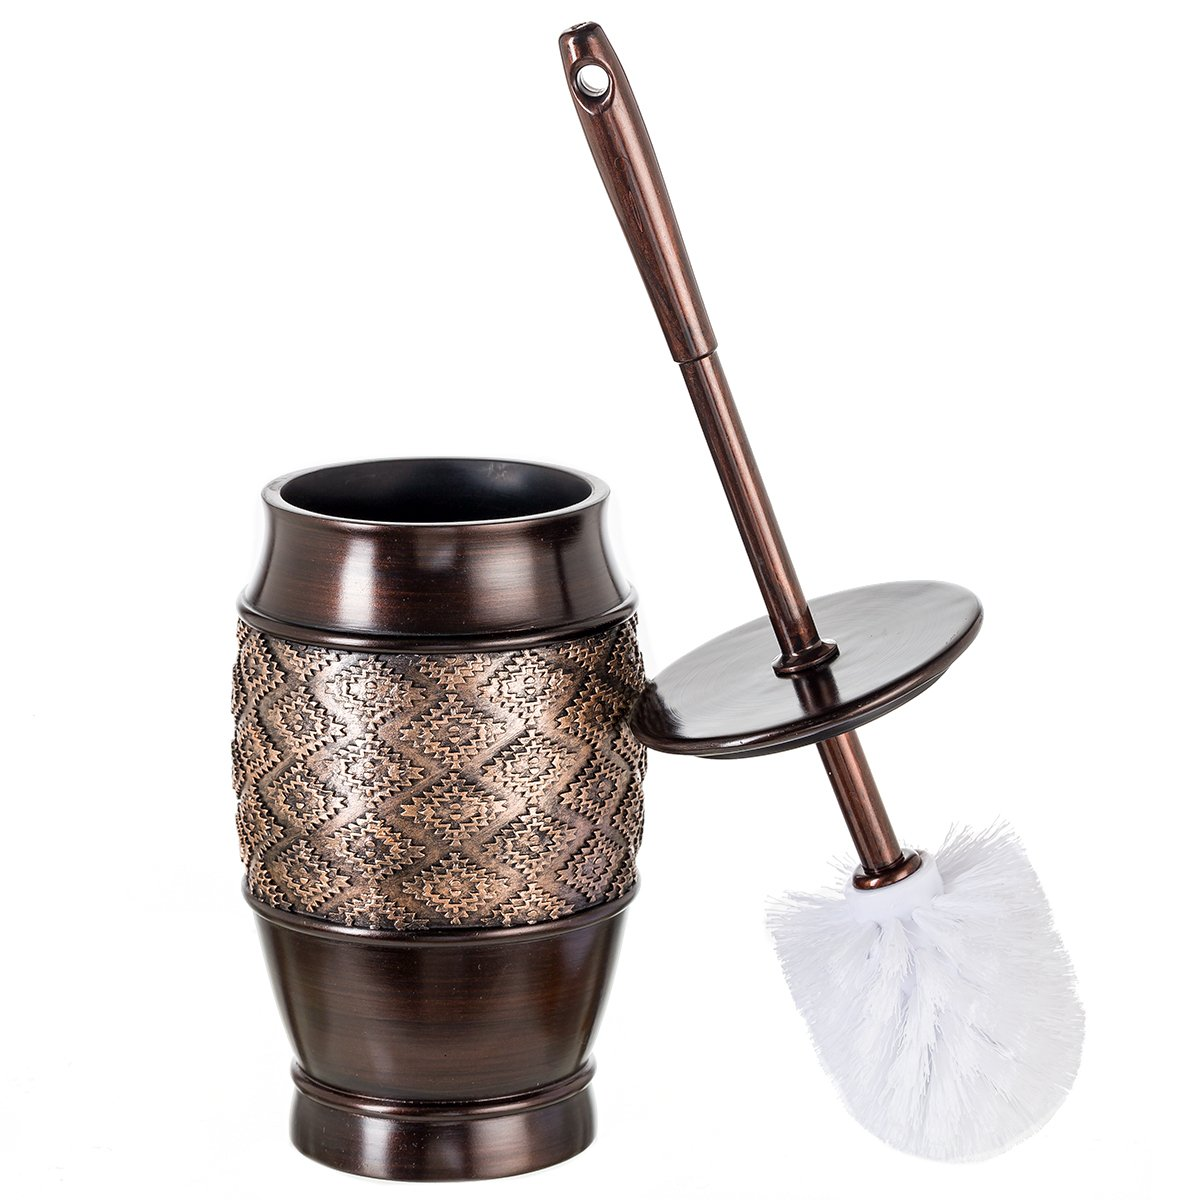 Dublin Decorative Toilet Cleaning Bowl Brush with Holder and Lid - (5'' x 5'' x 15.5''H) Decorative Bowl Scrubber, Space Saving Design, Contemporary Scrubbing Cleaner (Brown) by Creative Scents